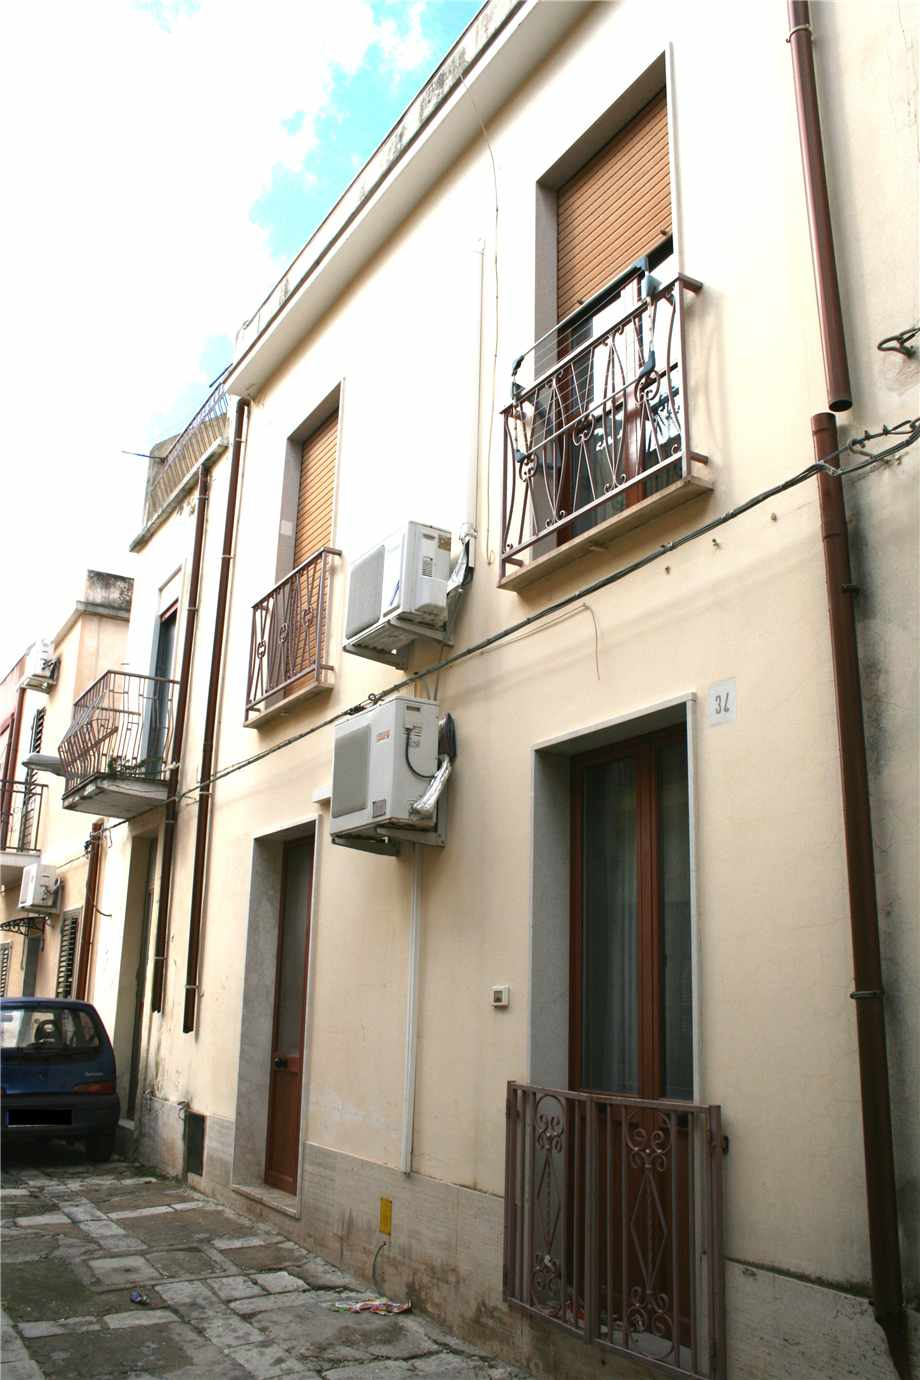 For sale Detached house Noto  #16C n.2